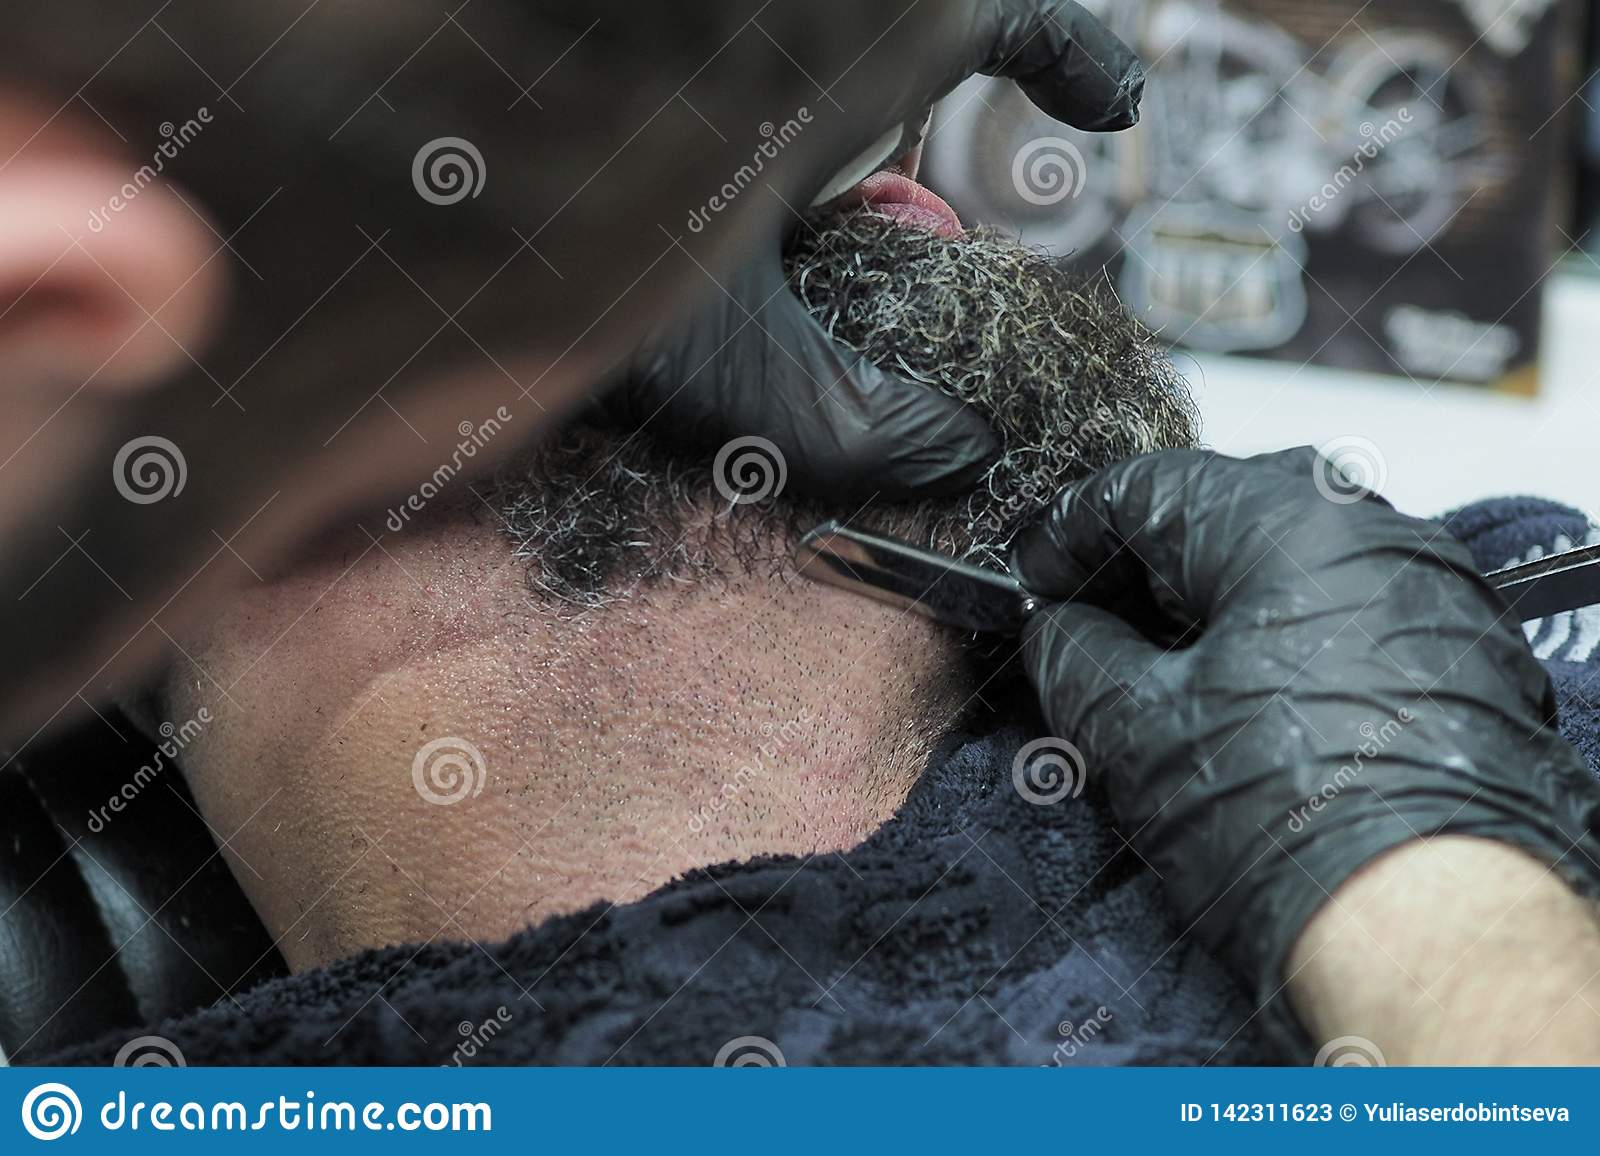 Barber shaves the beard of an elderly man with gray hair sharp razor